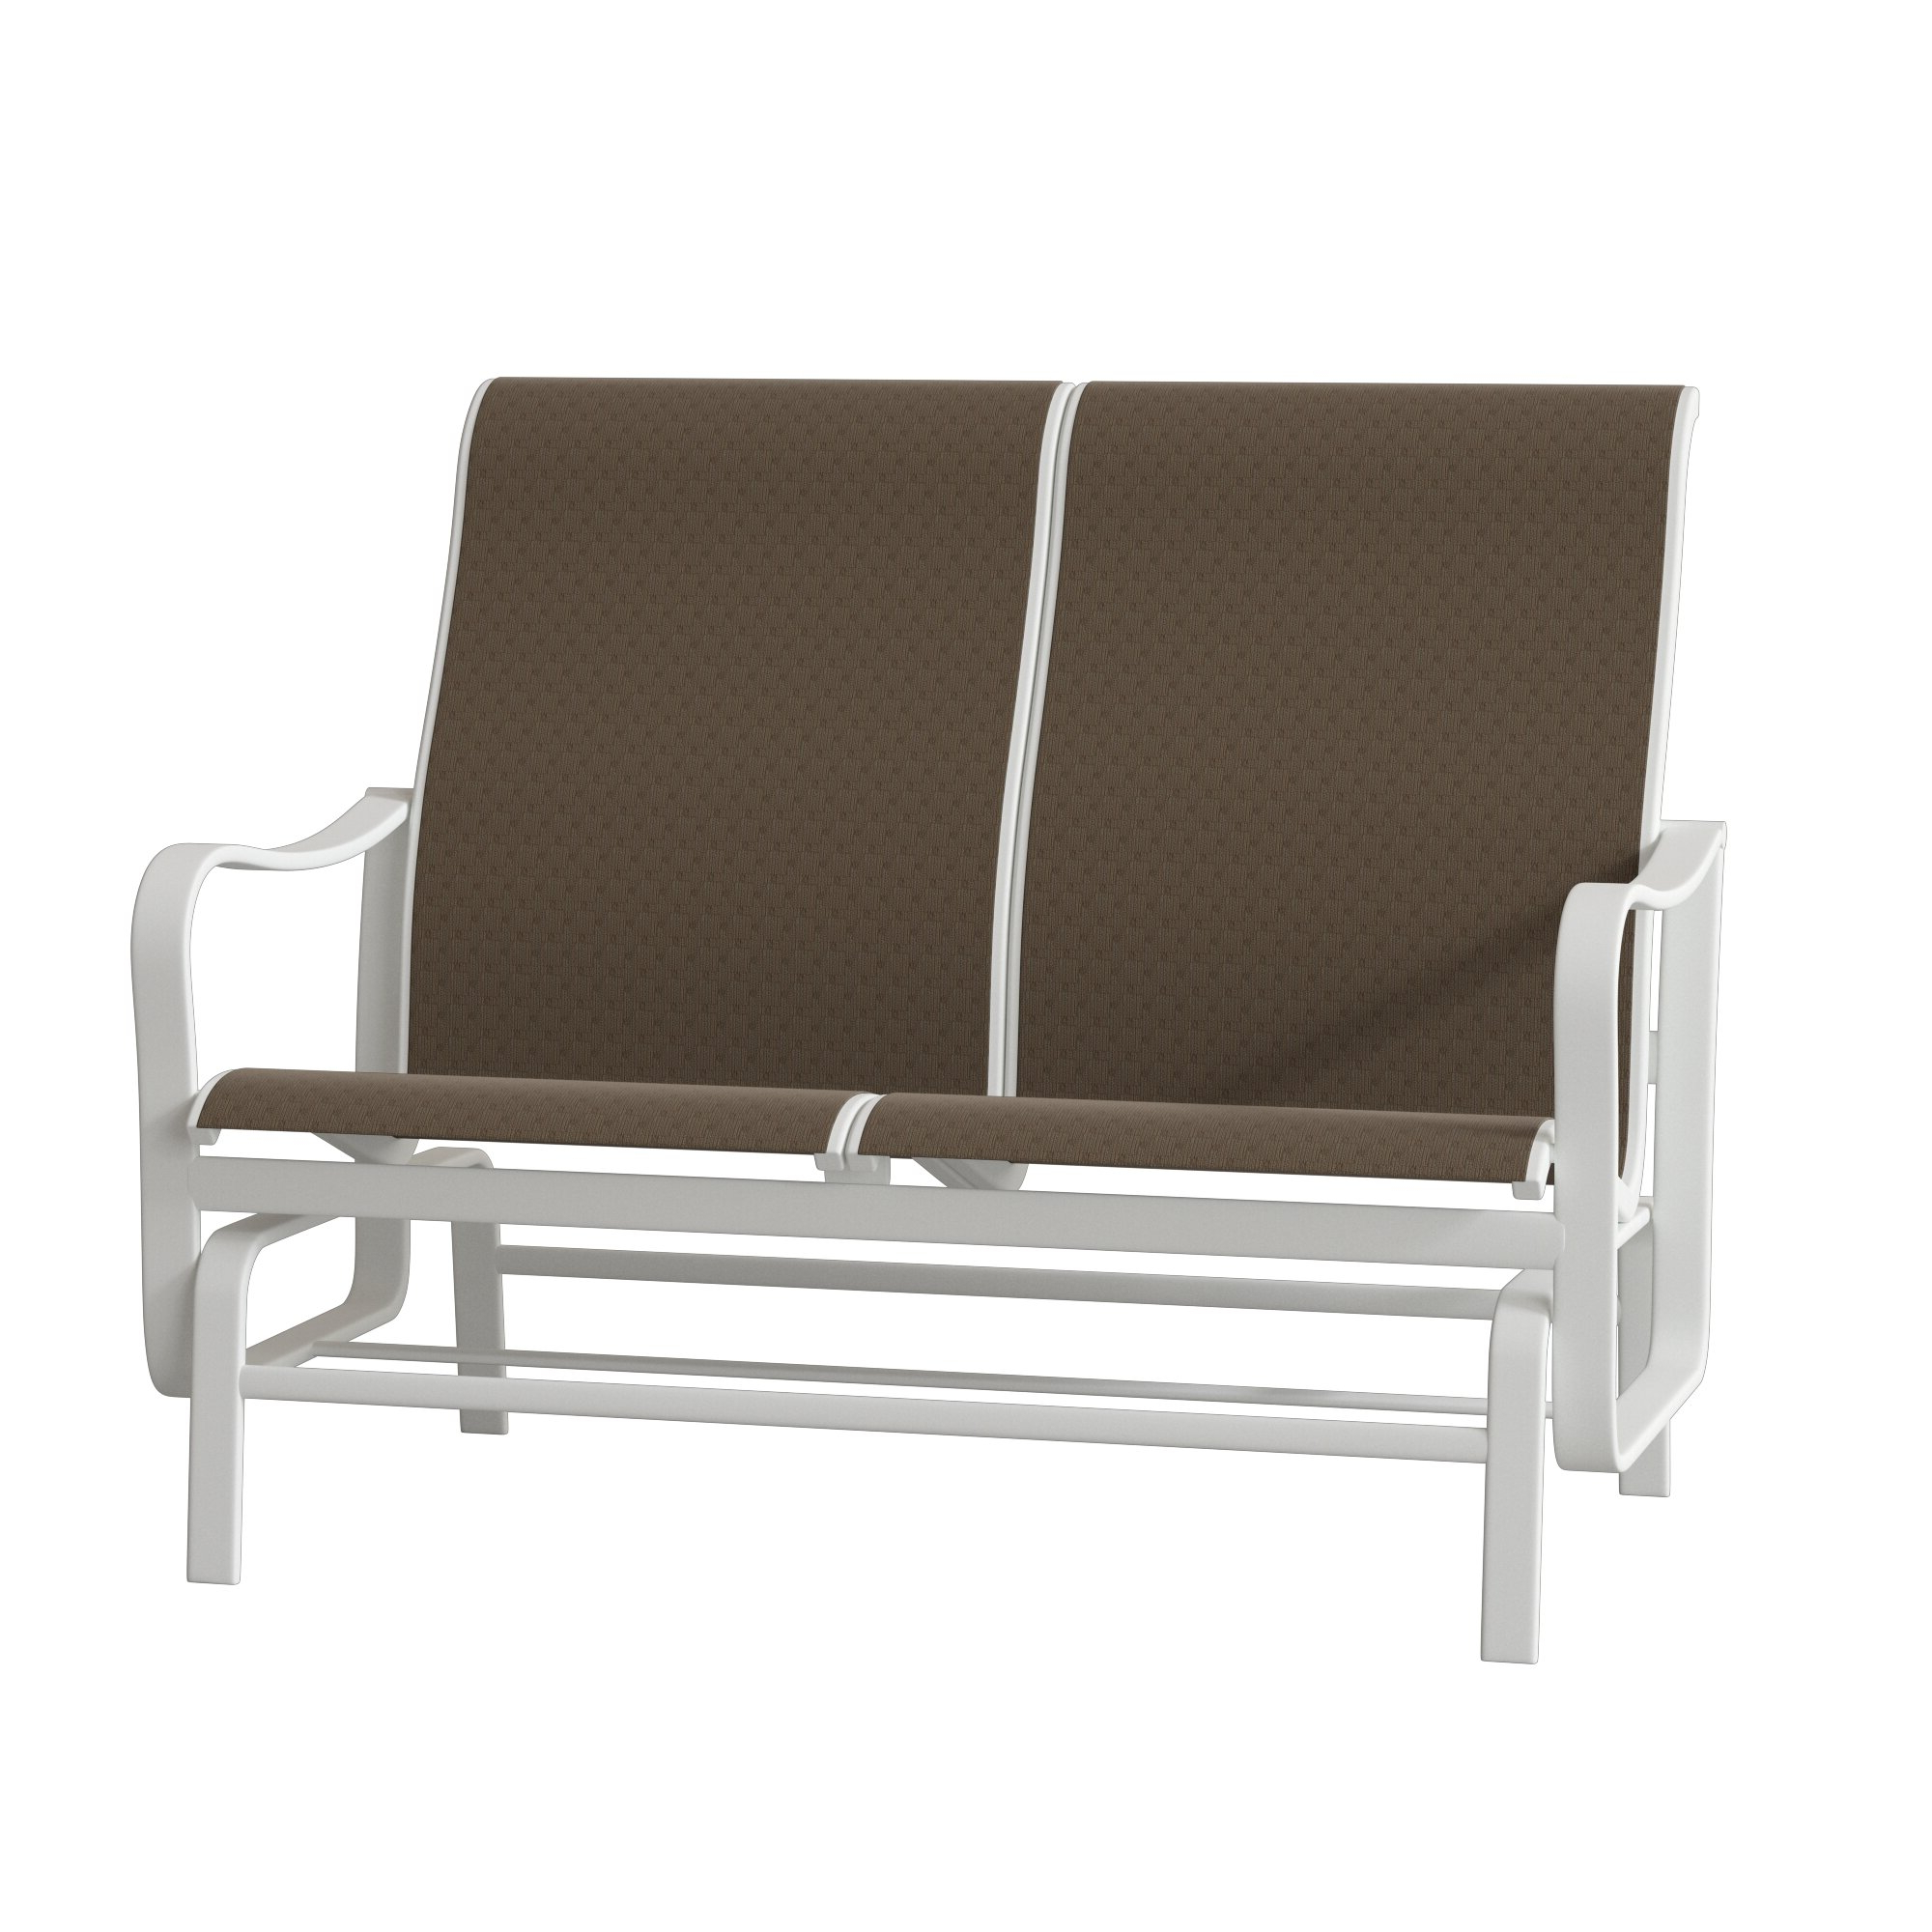 Popular Sling Double Glider Benches With Regard To Shoreline Sling Double Glider Bench (View 9 of 30)